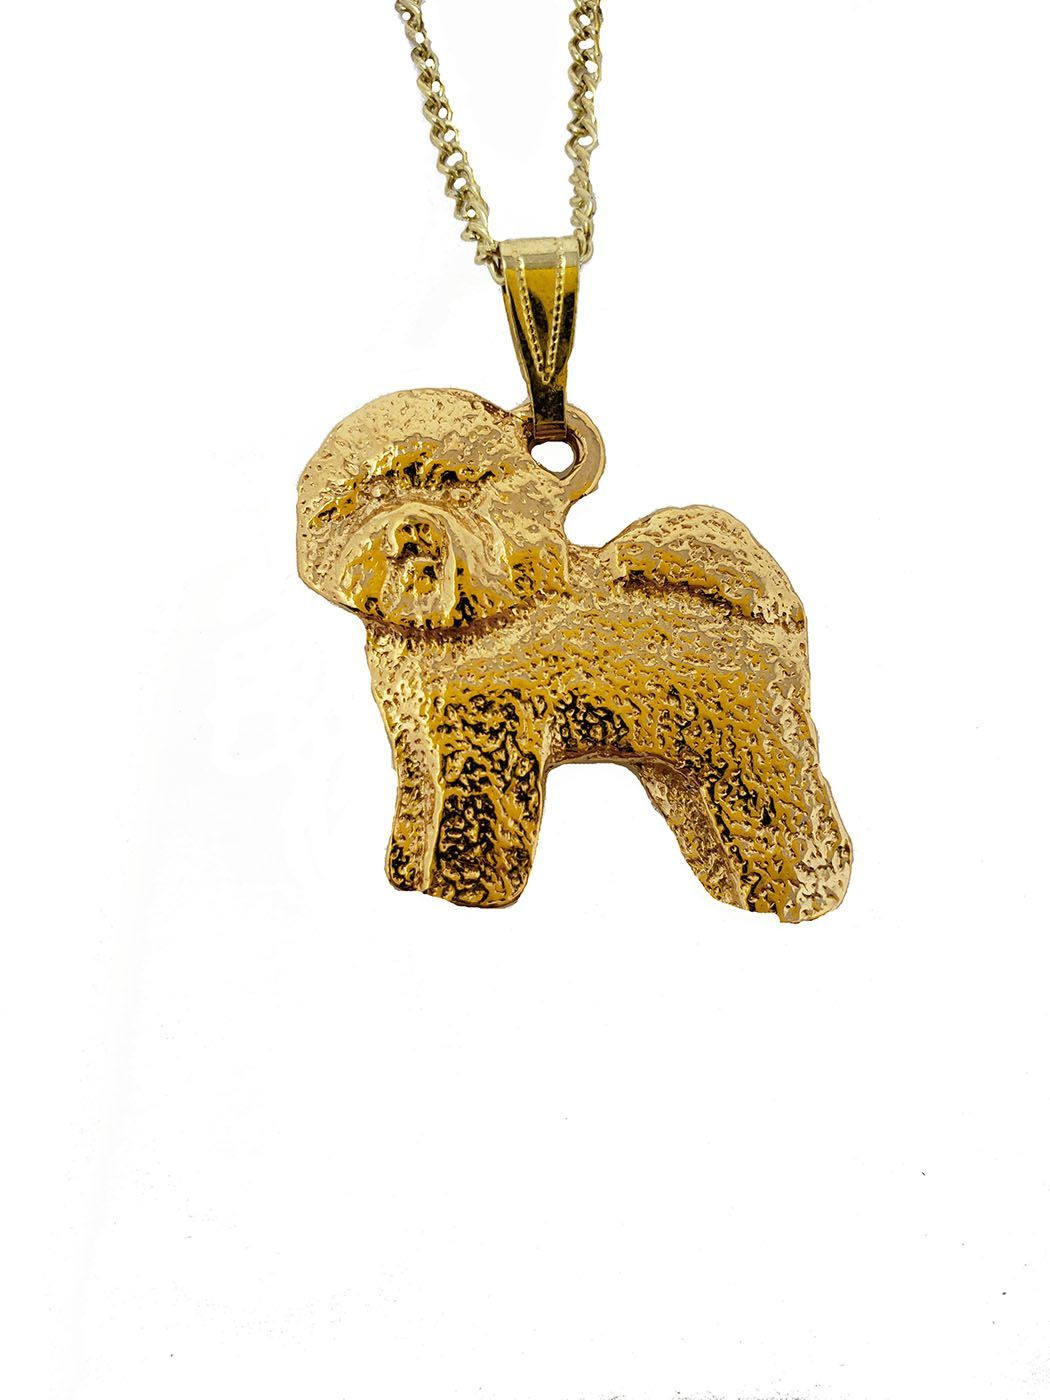 Bichon Frise 24K Gold Plated Pendant with Necklace